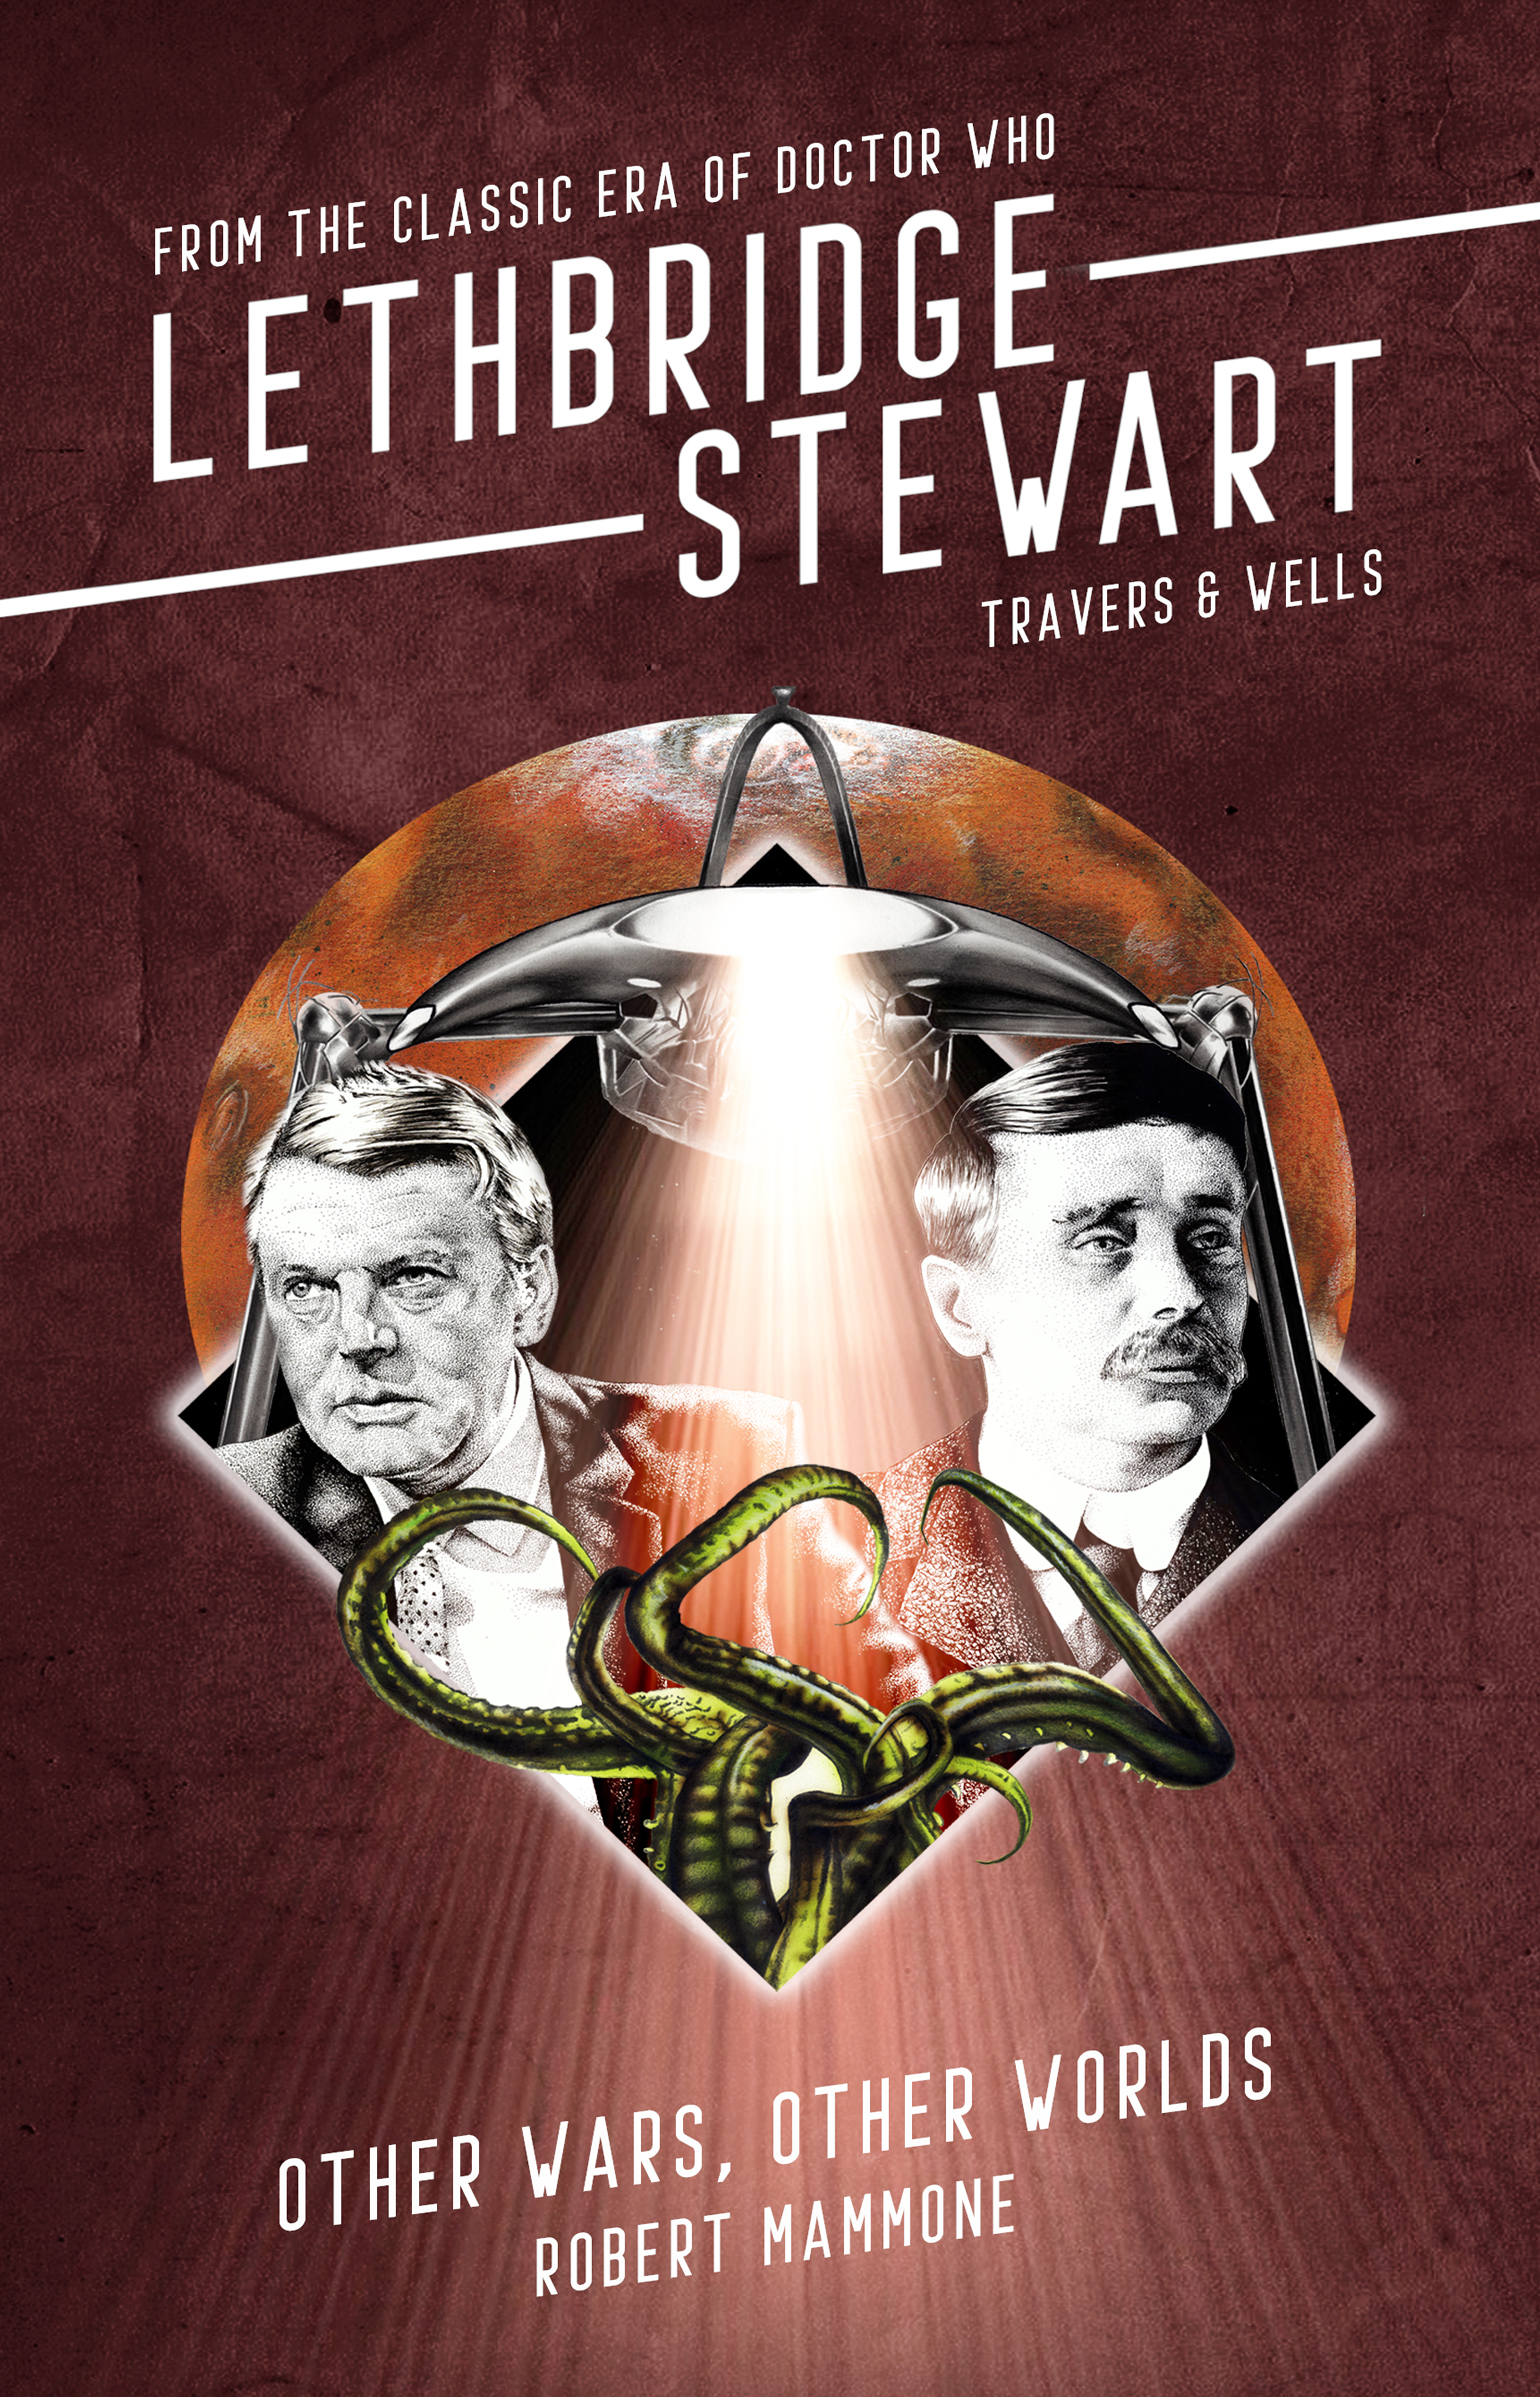 Lethbridge-Stewart: Travers and Wells: Other Wars, Other Worlds (Credit: Candy Jar Books)